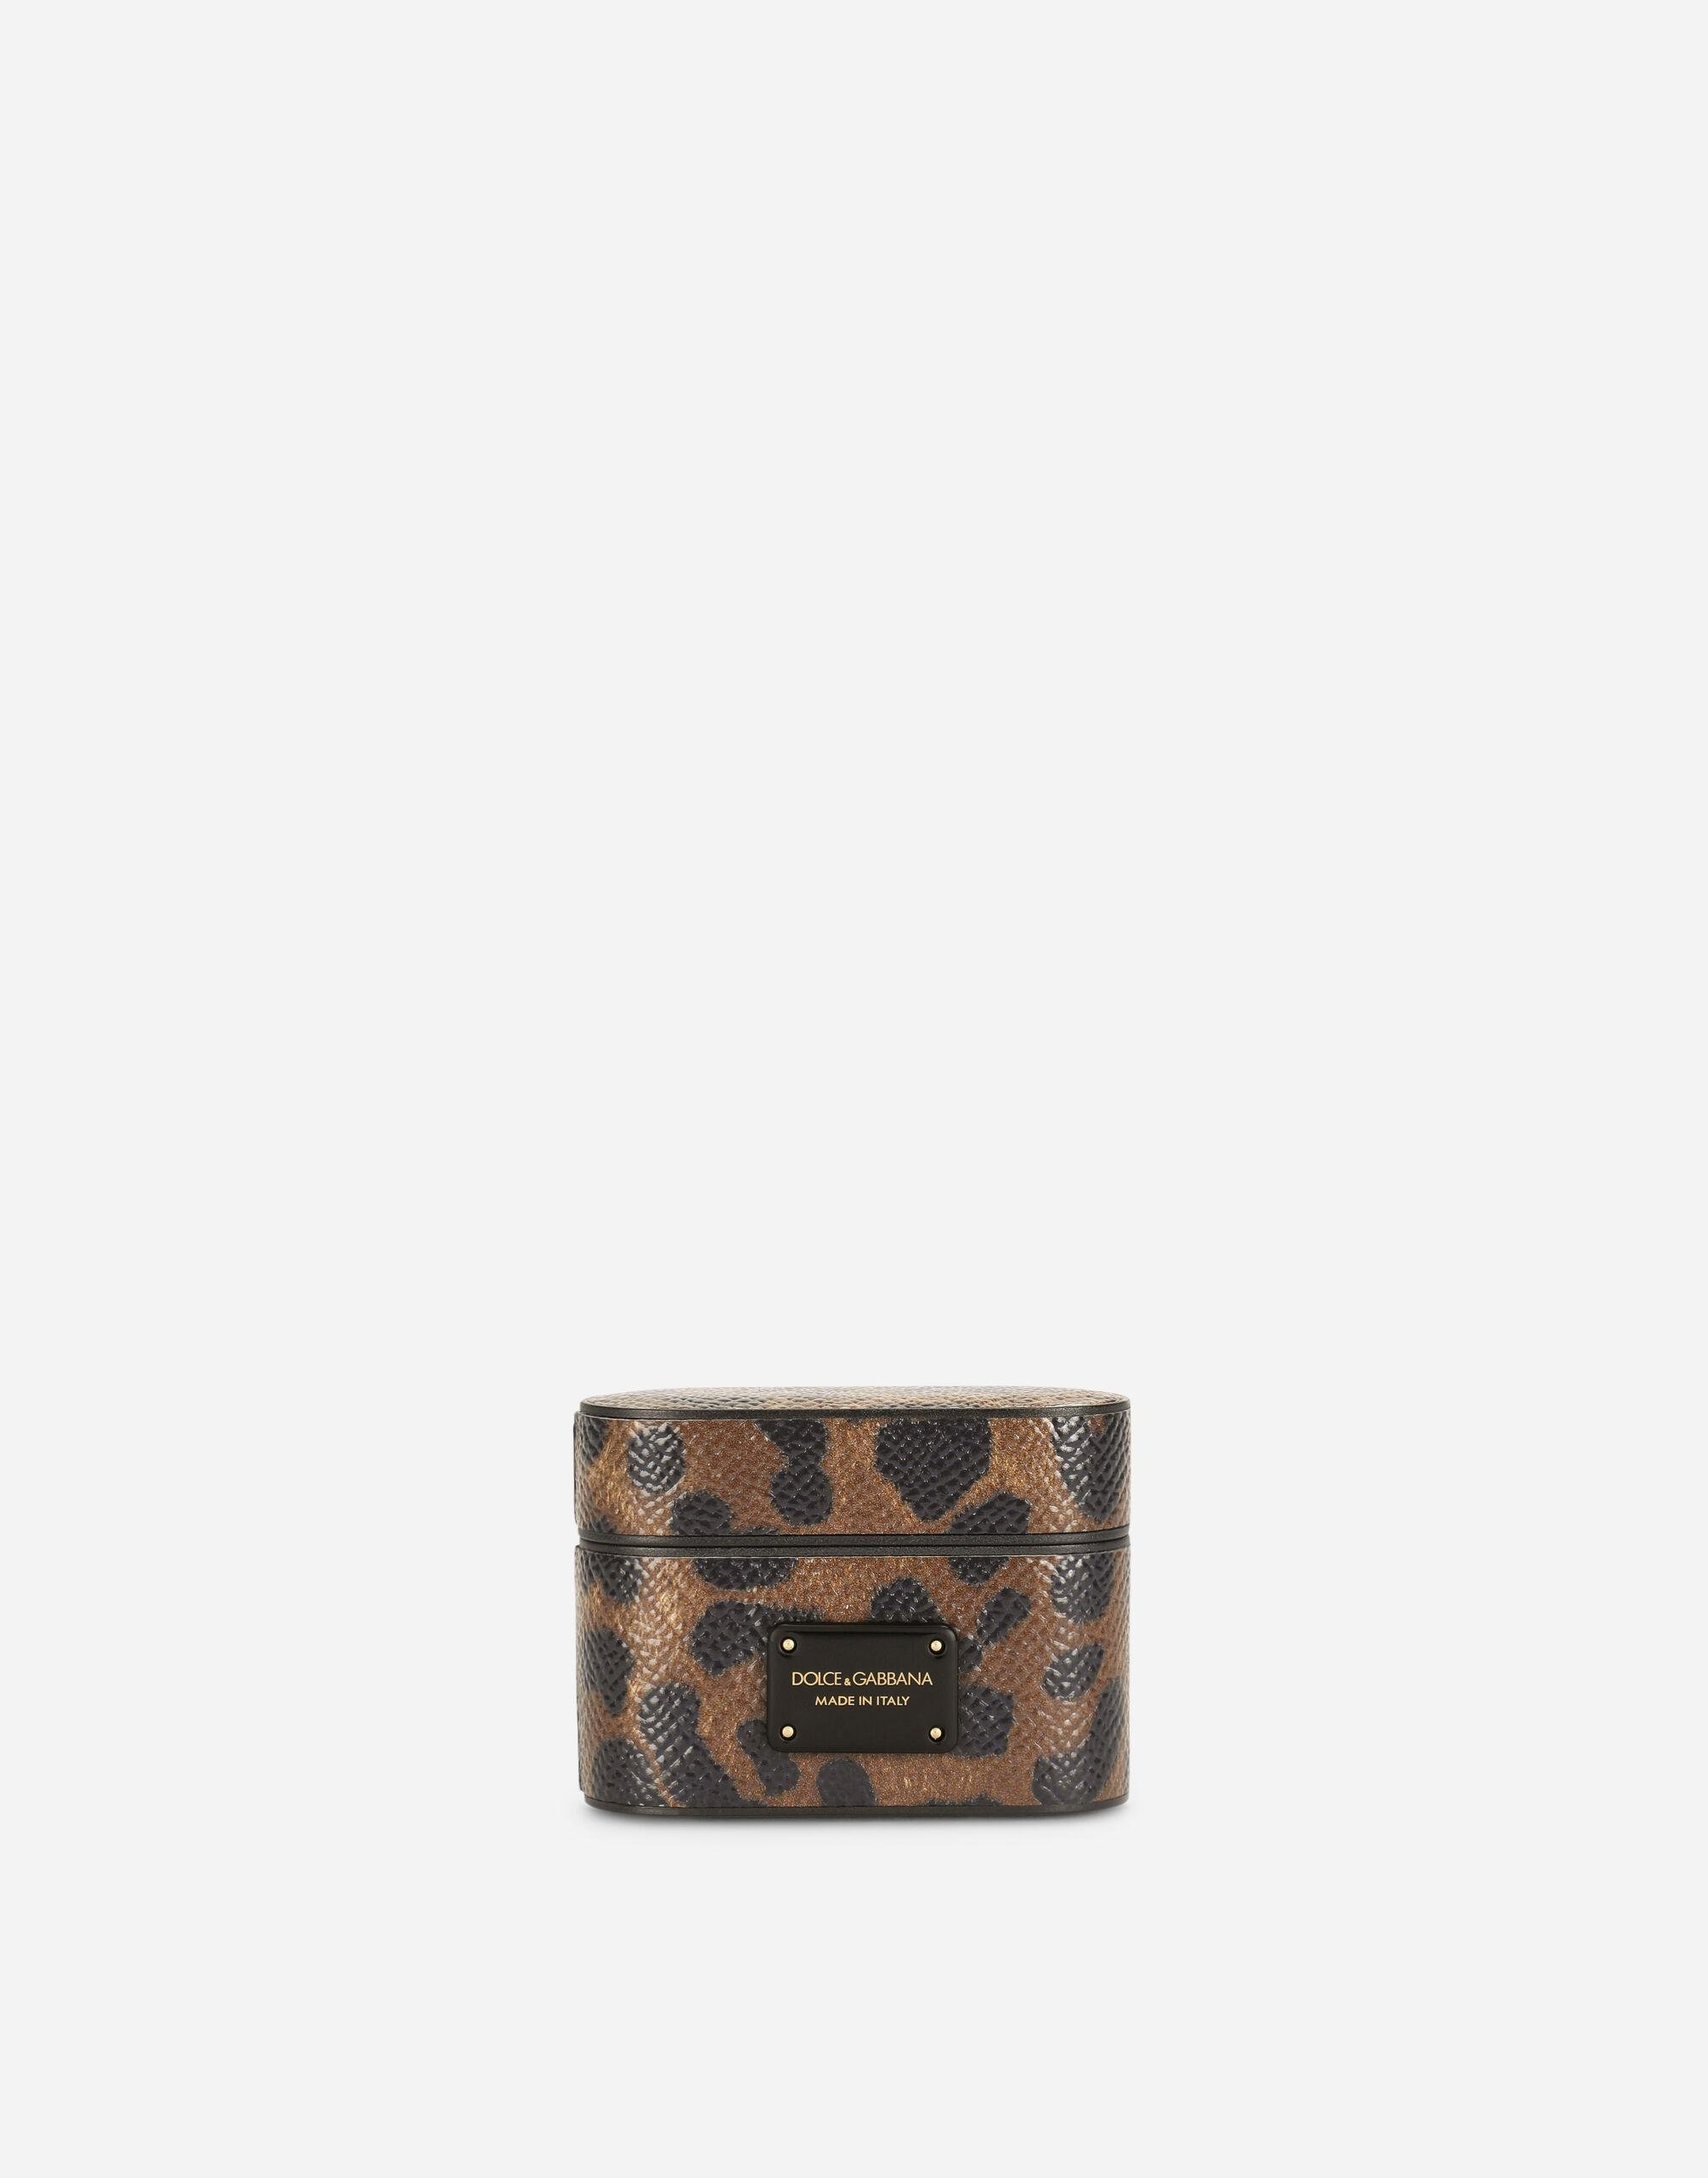 Dauphine calfskin airpods pro case with leopard print and plate